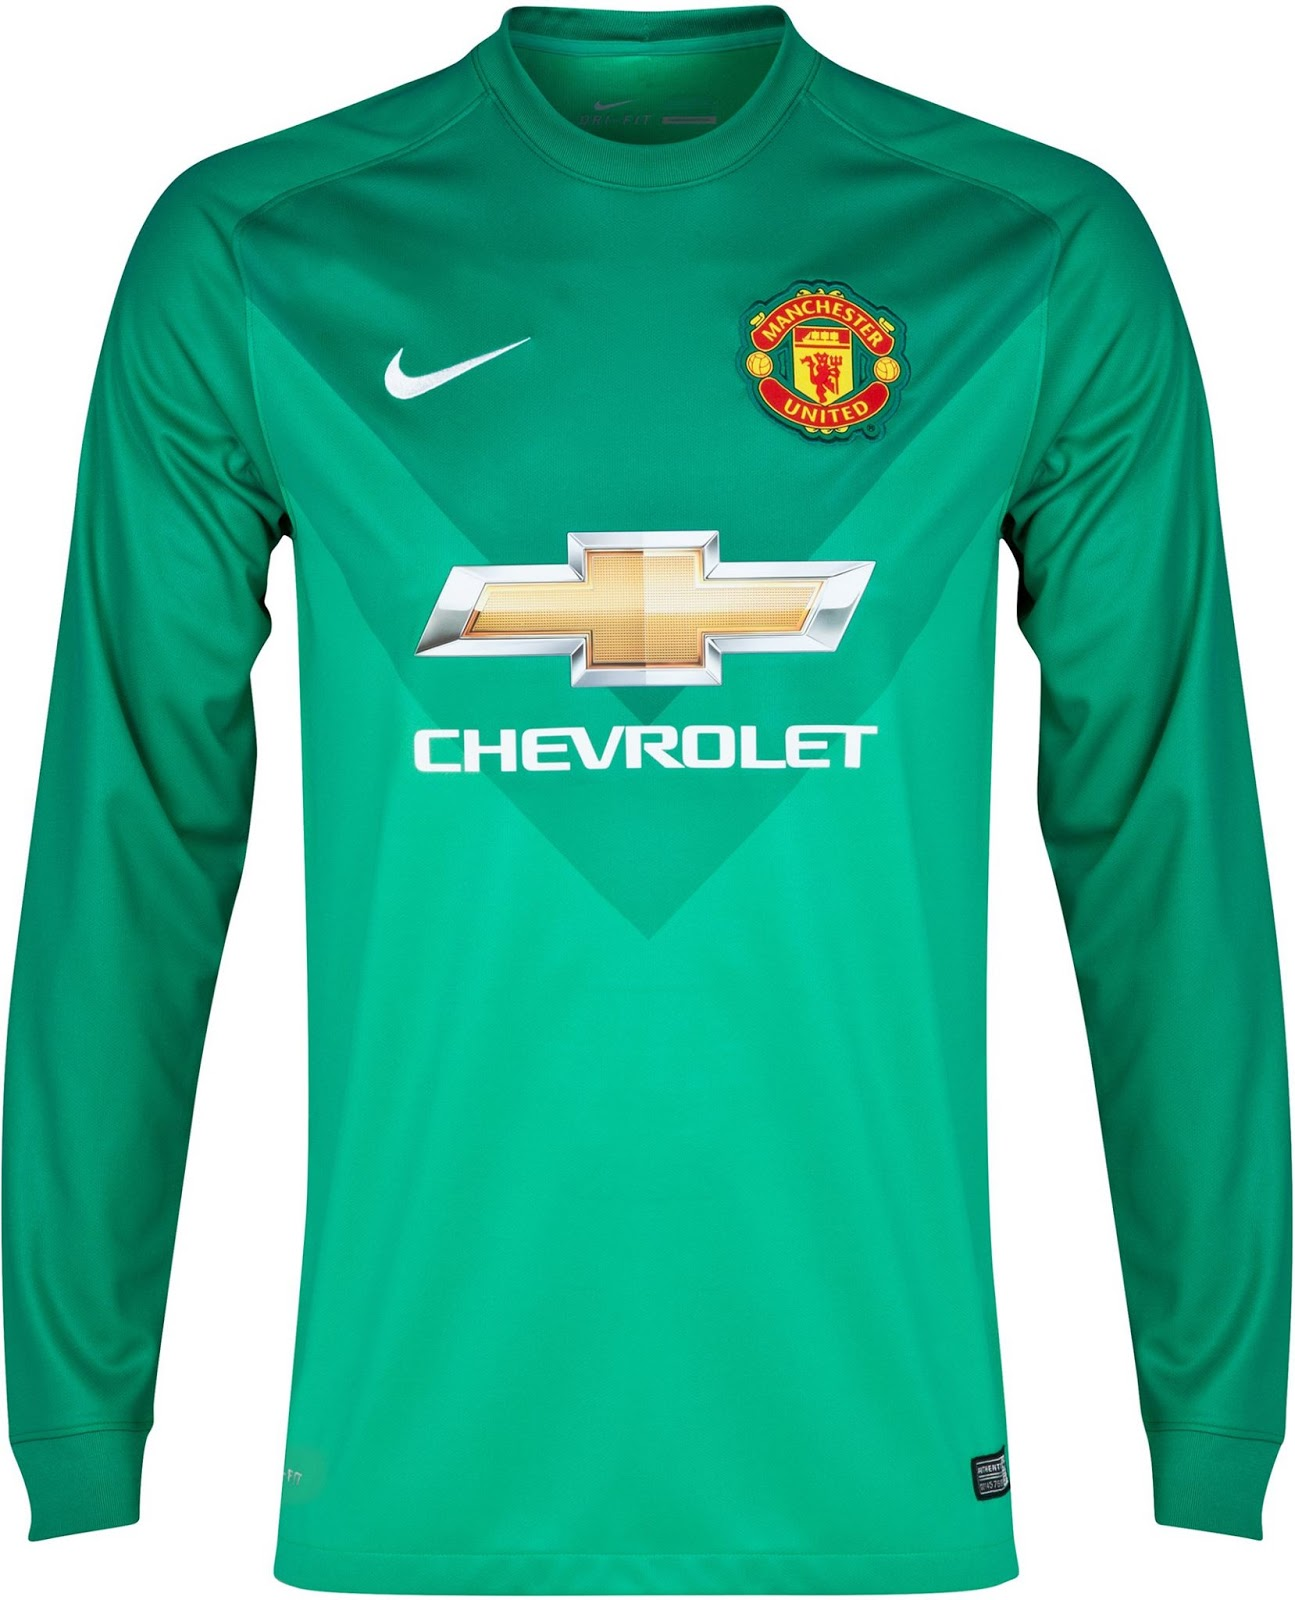 95780814271 Manchester United 14-15 Goalkeeper Kit. This is the new ...